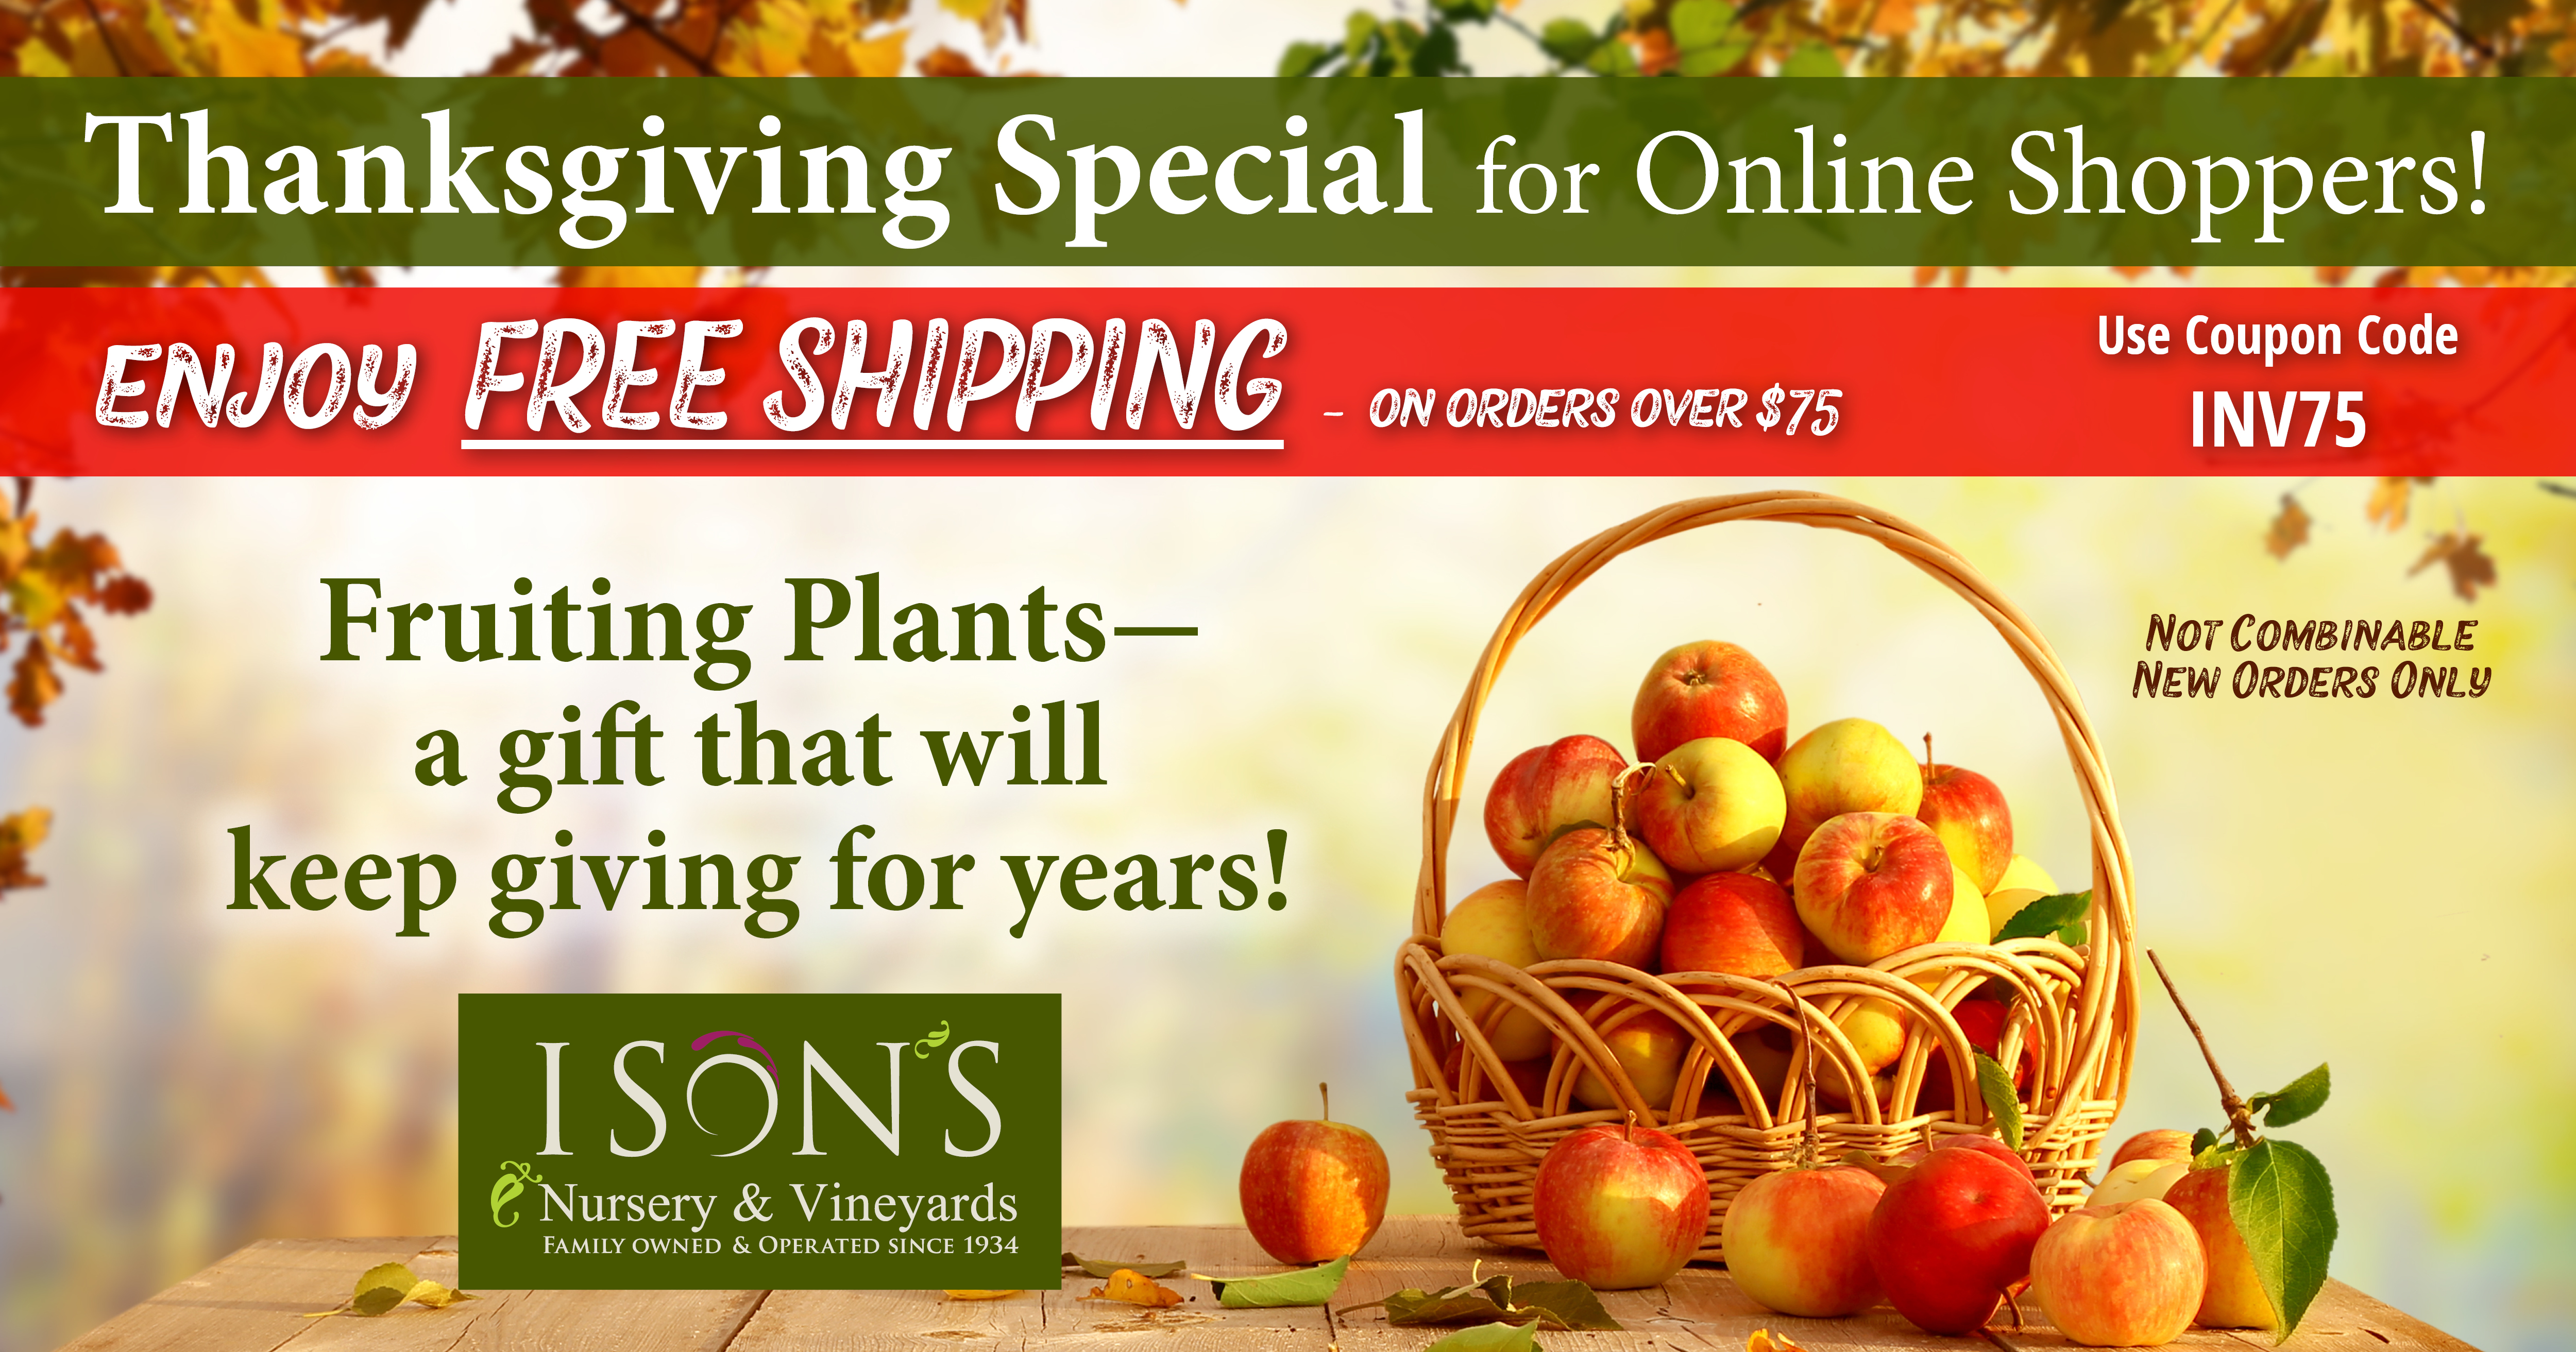 https://www.isons.com/wp-content/uploads/2019/11/ISON-facebook-share-free-shippingThanksgiving75-1.jpg